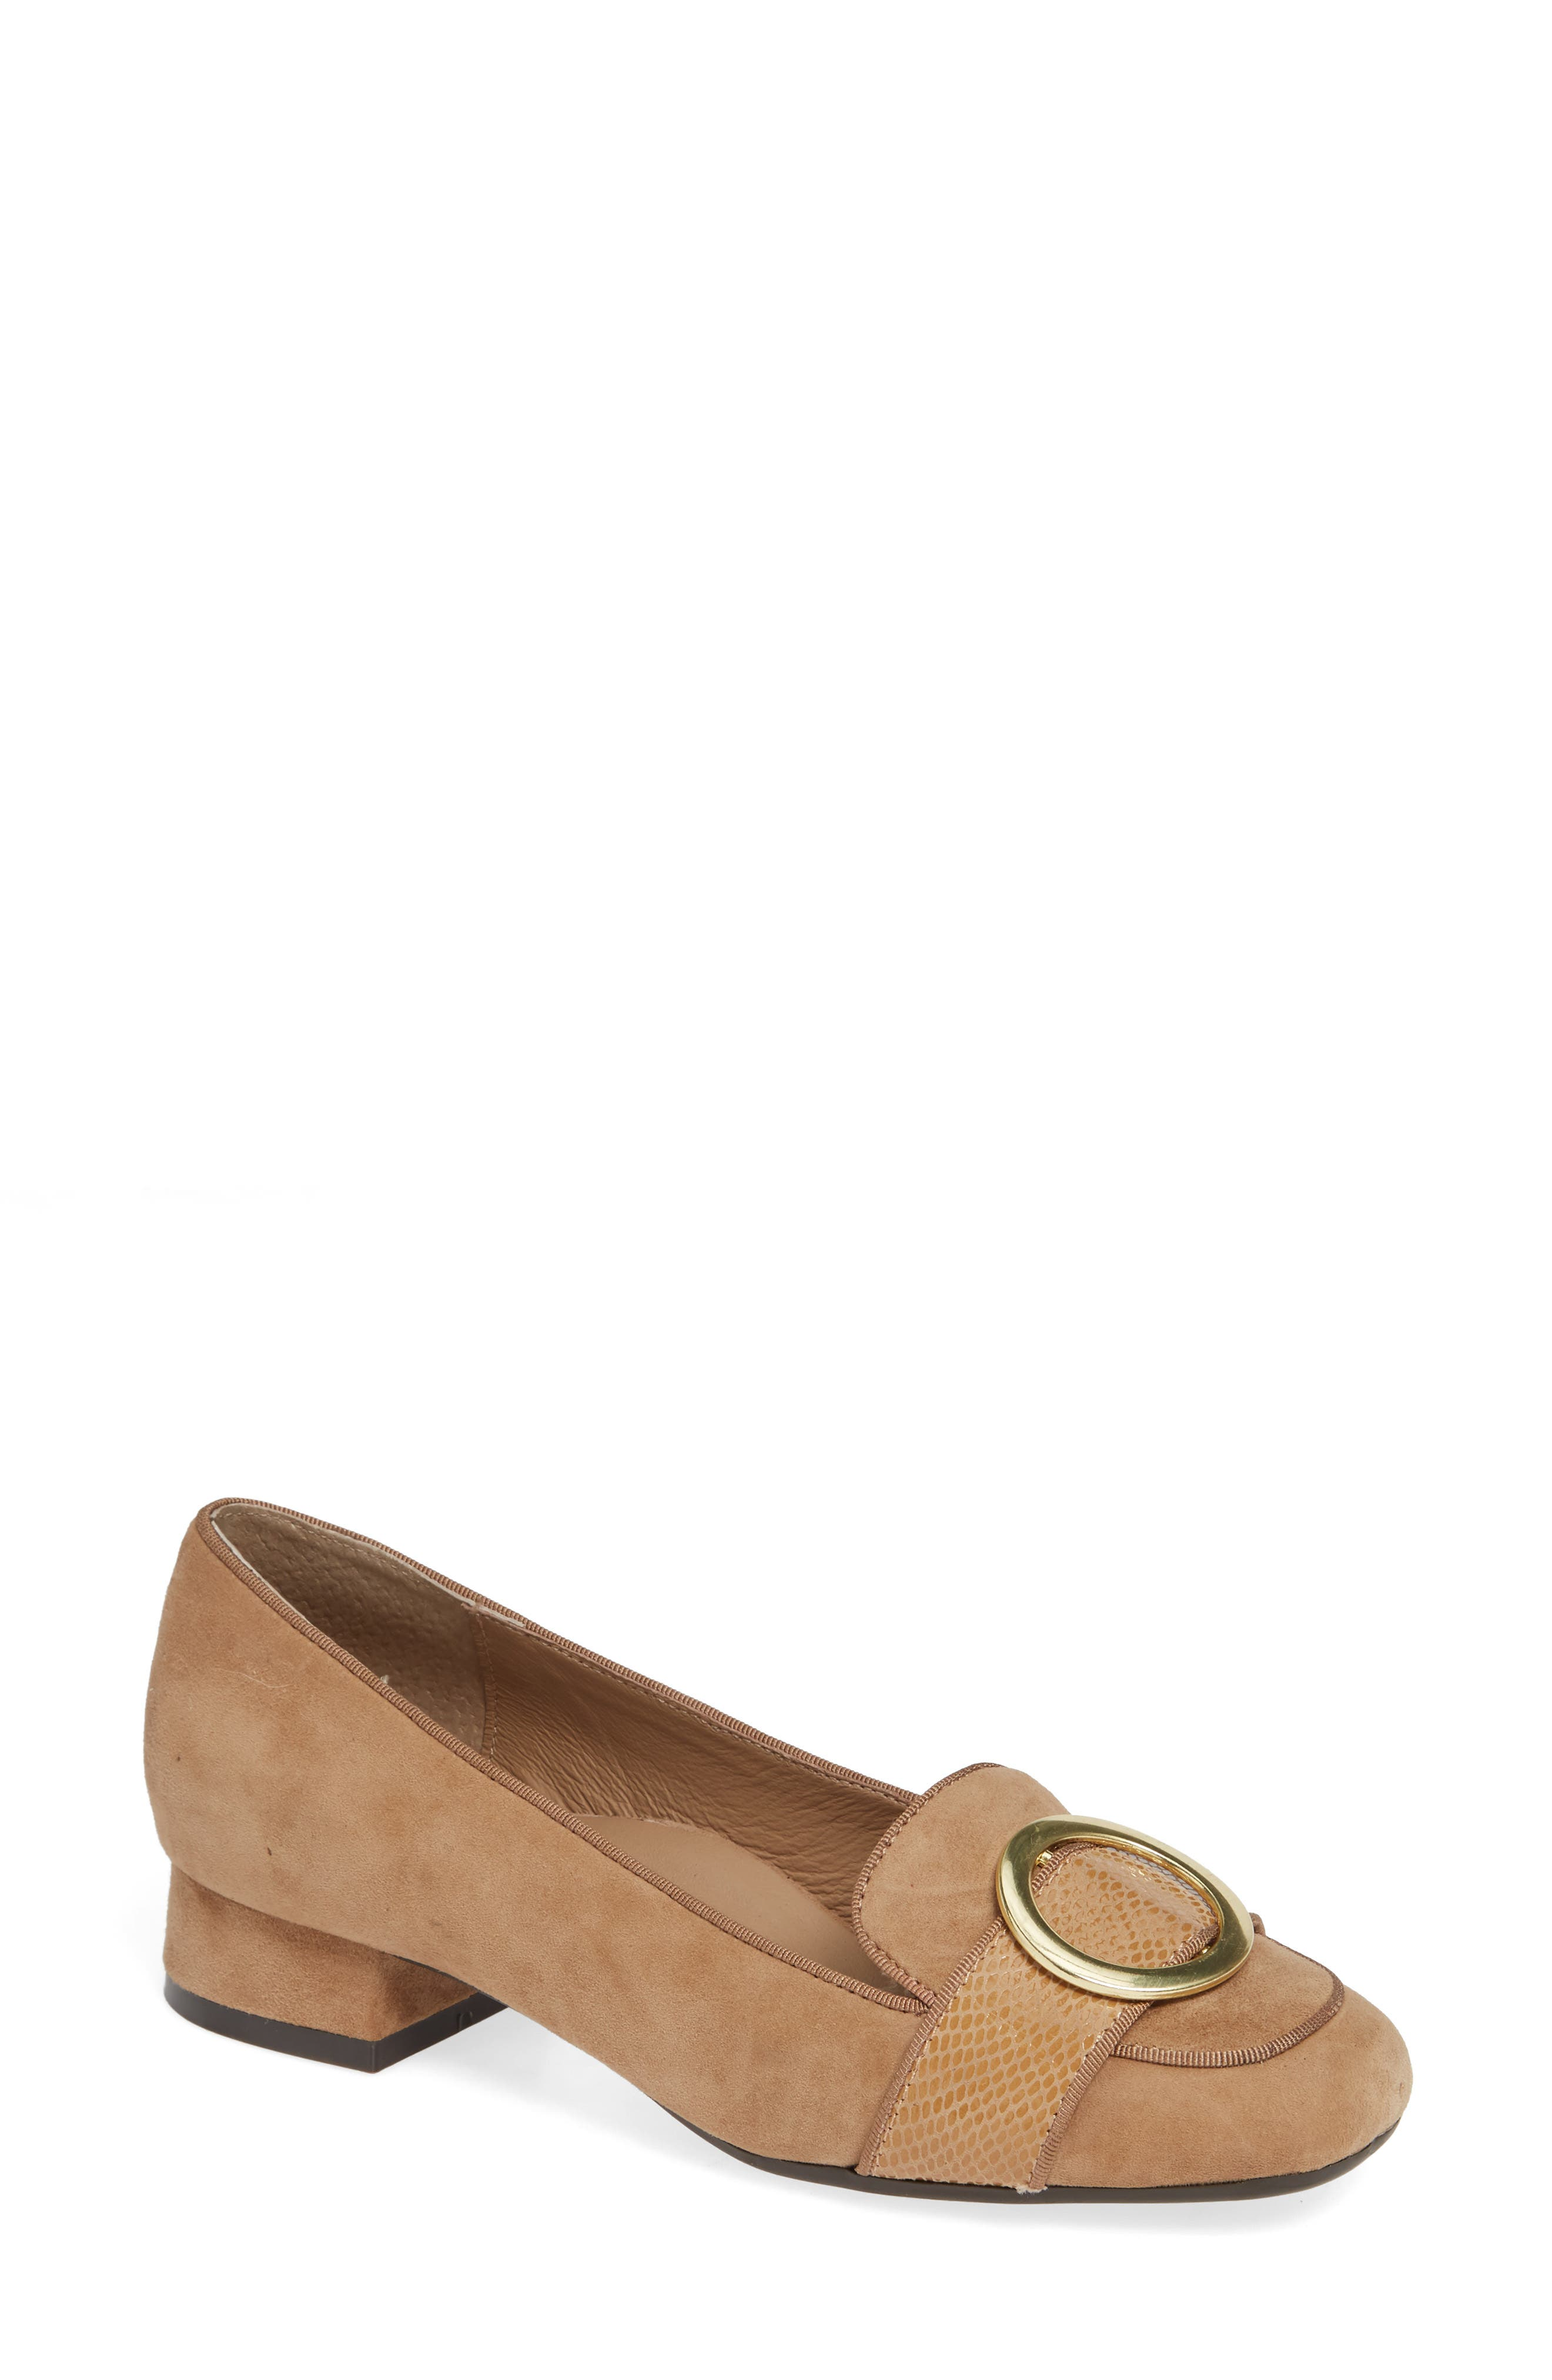 Bettye Muller Concepts Garbo Loafer, Brown